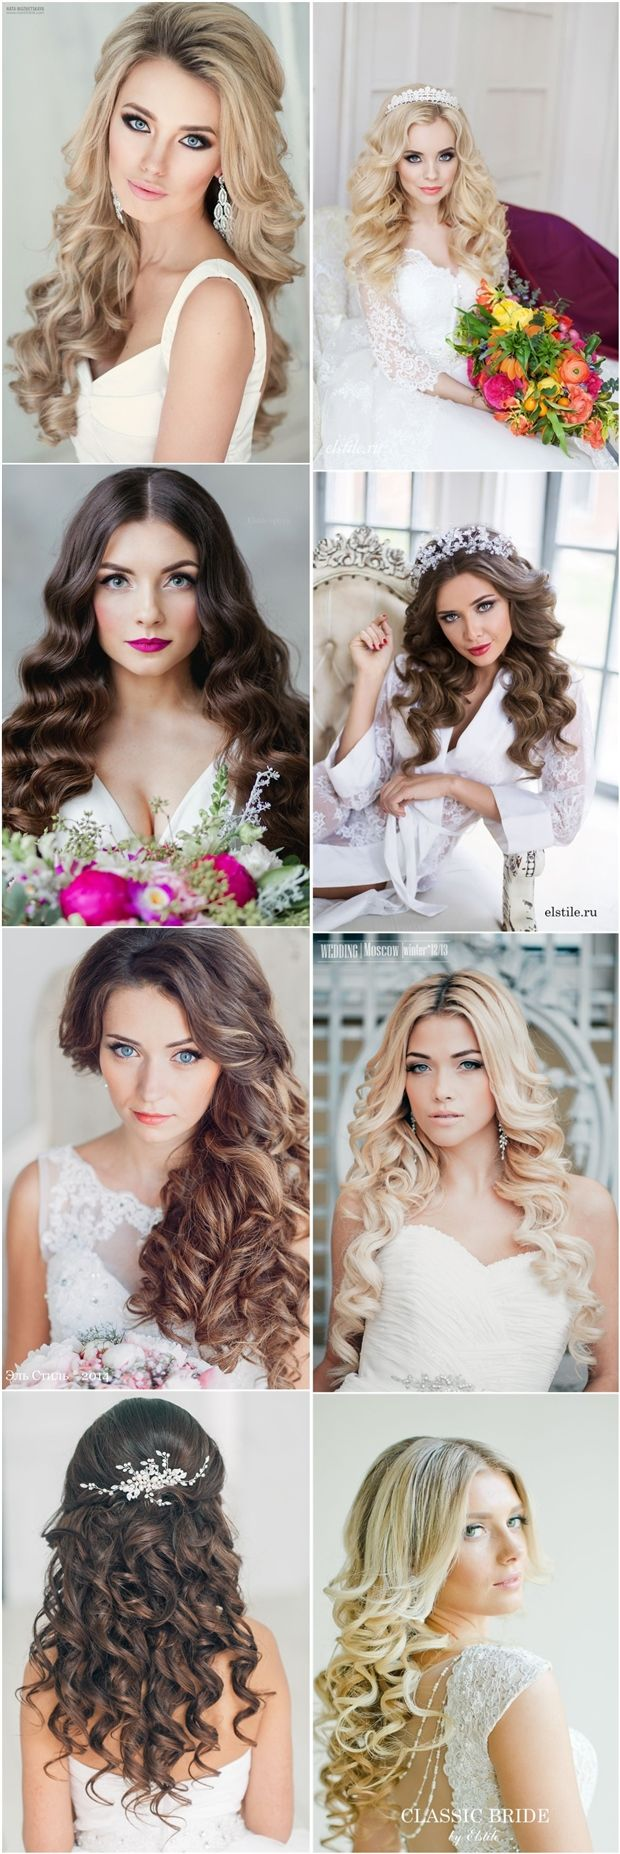 Gallery: Classic Dwon wedding hairstyles for long hair - Deer Pearl Flowers / ww...